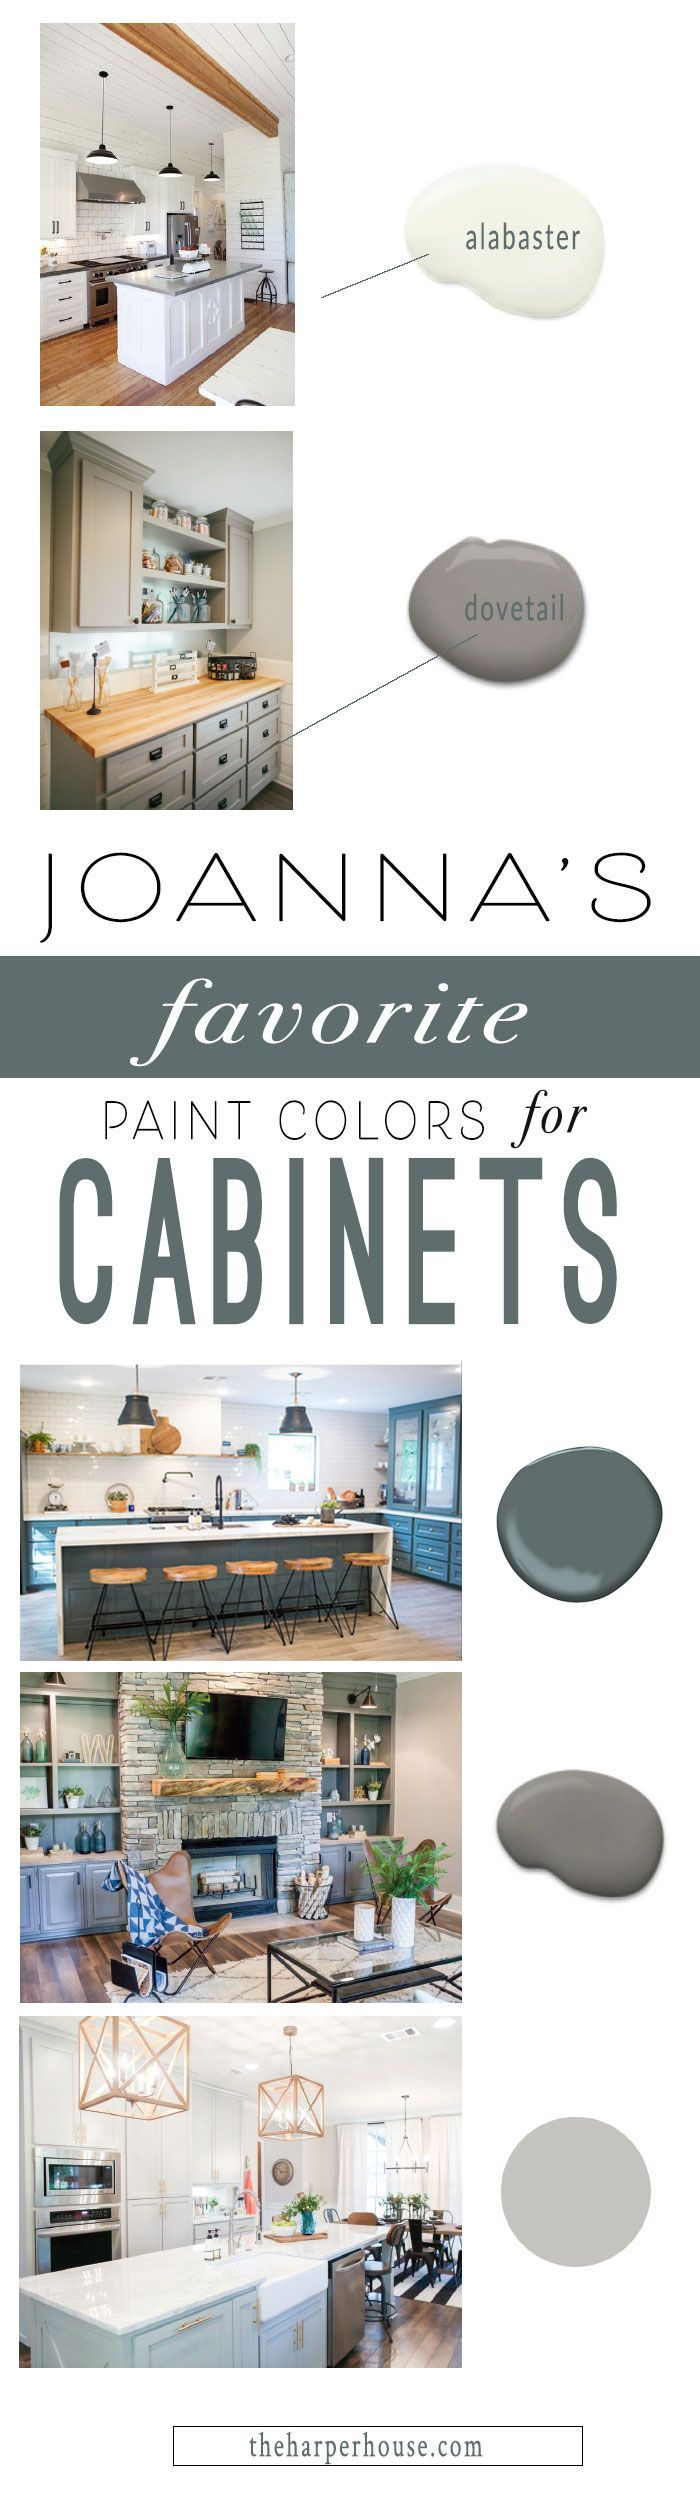 Fixer Upper style favorite paint colors for cabinets.